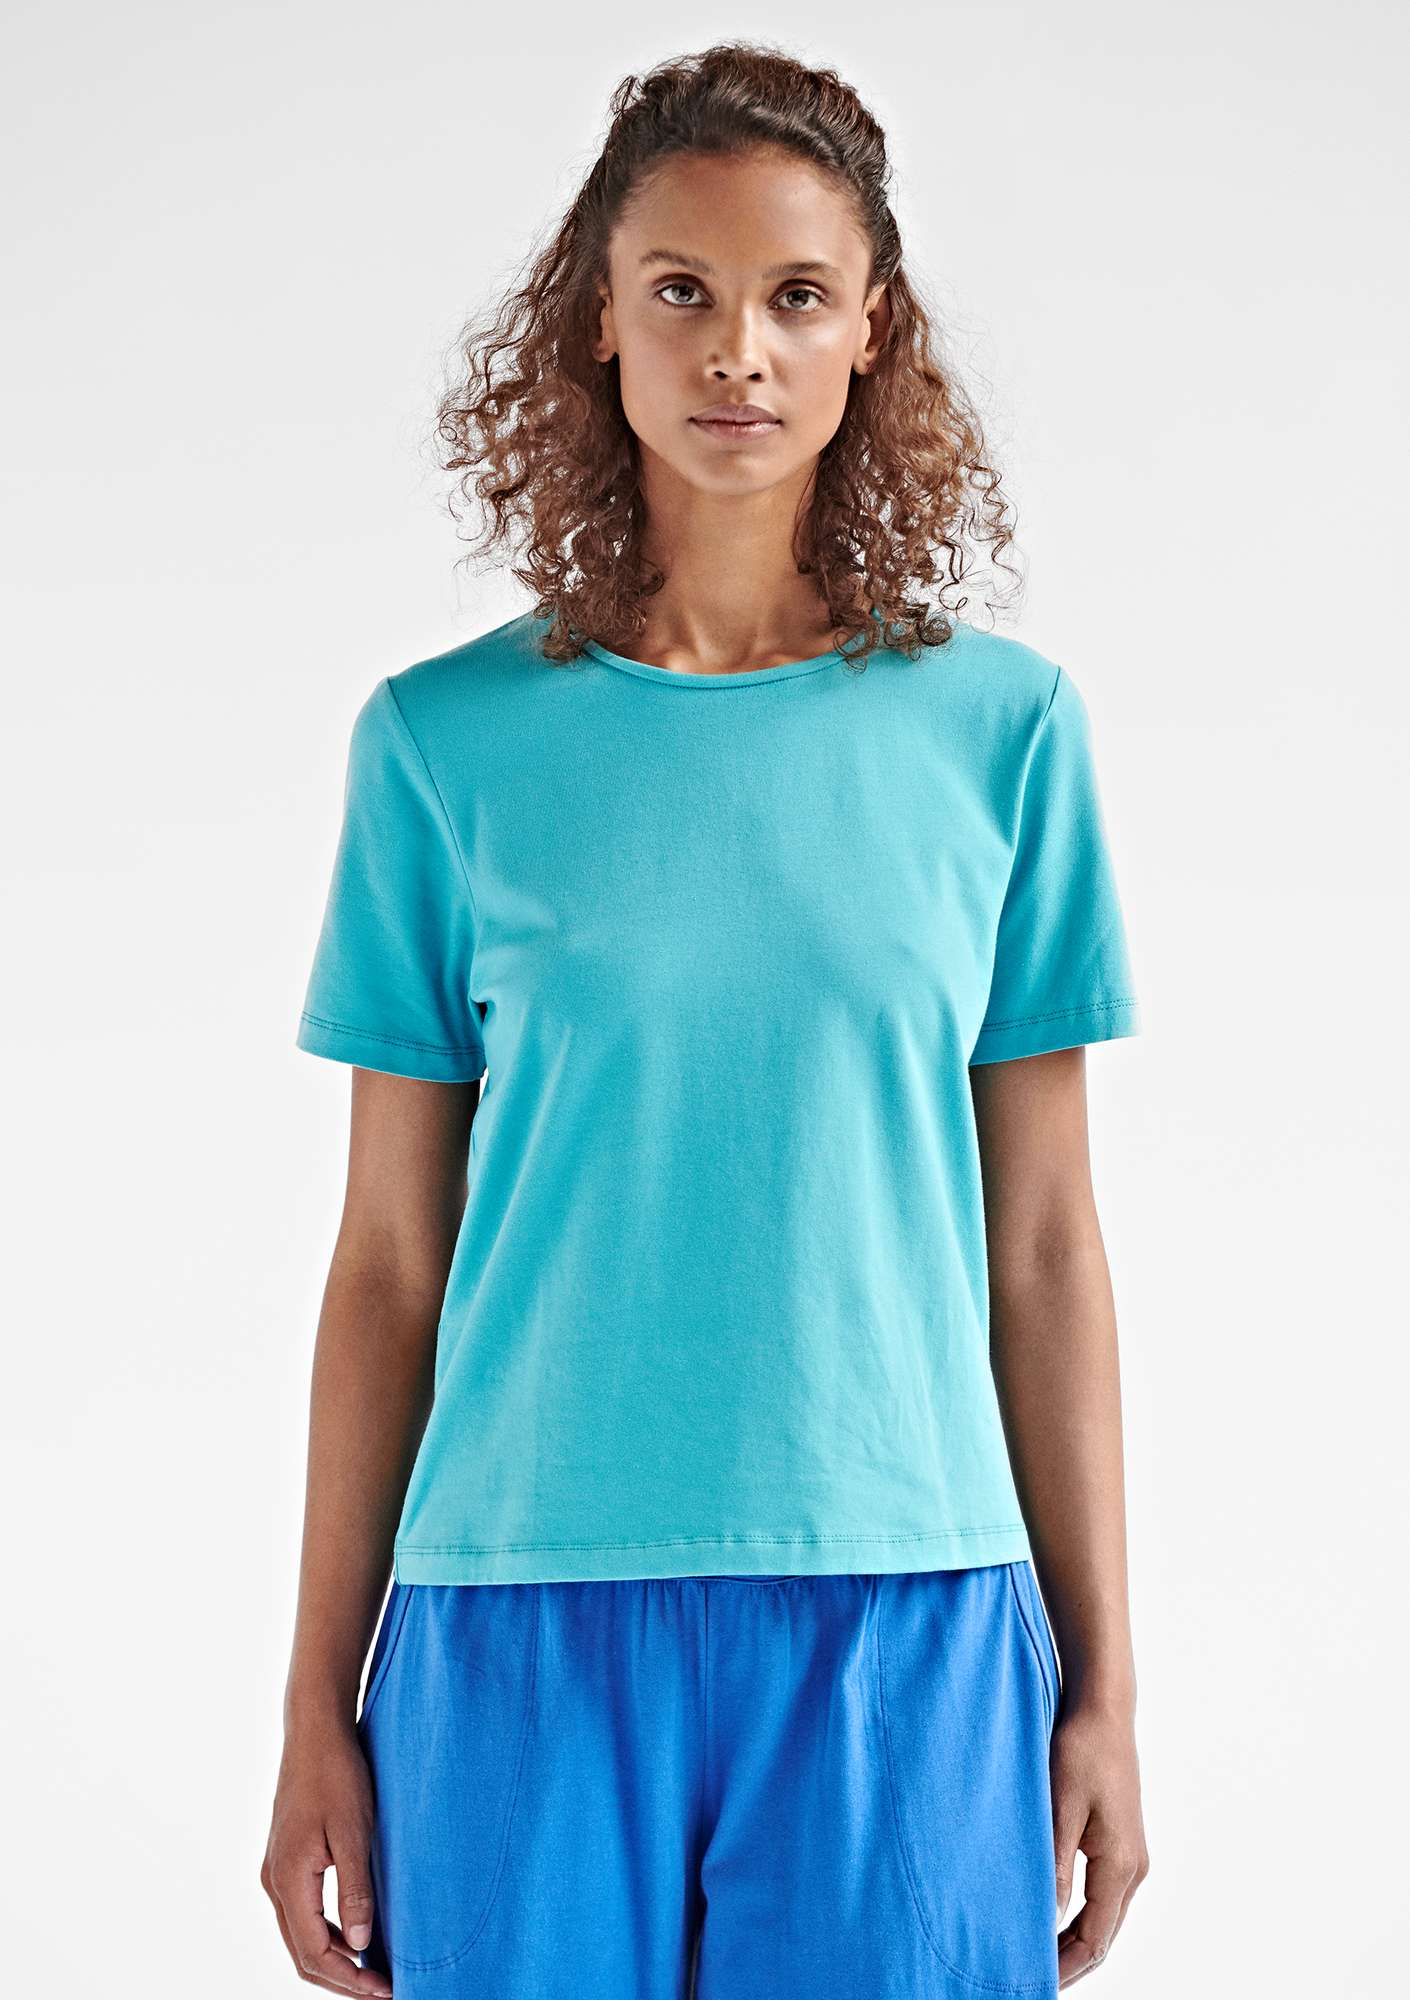 T-shirt in eco-cotton/elastane turquoise